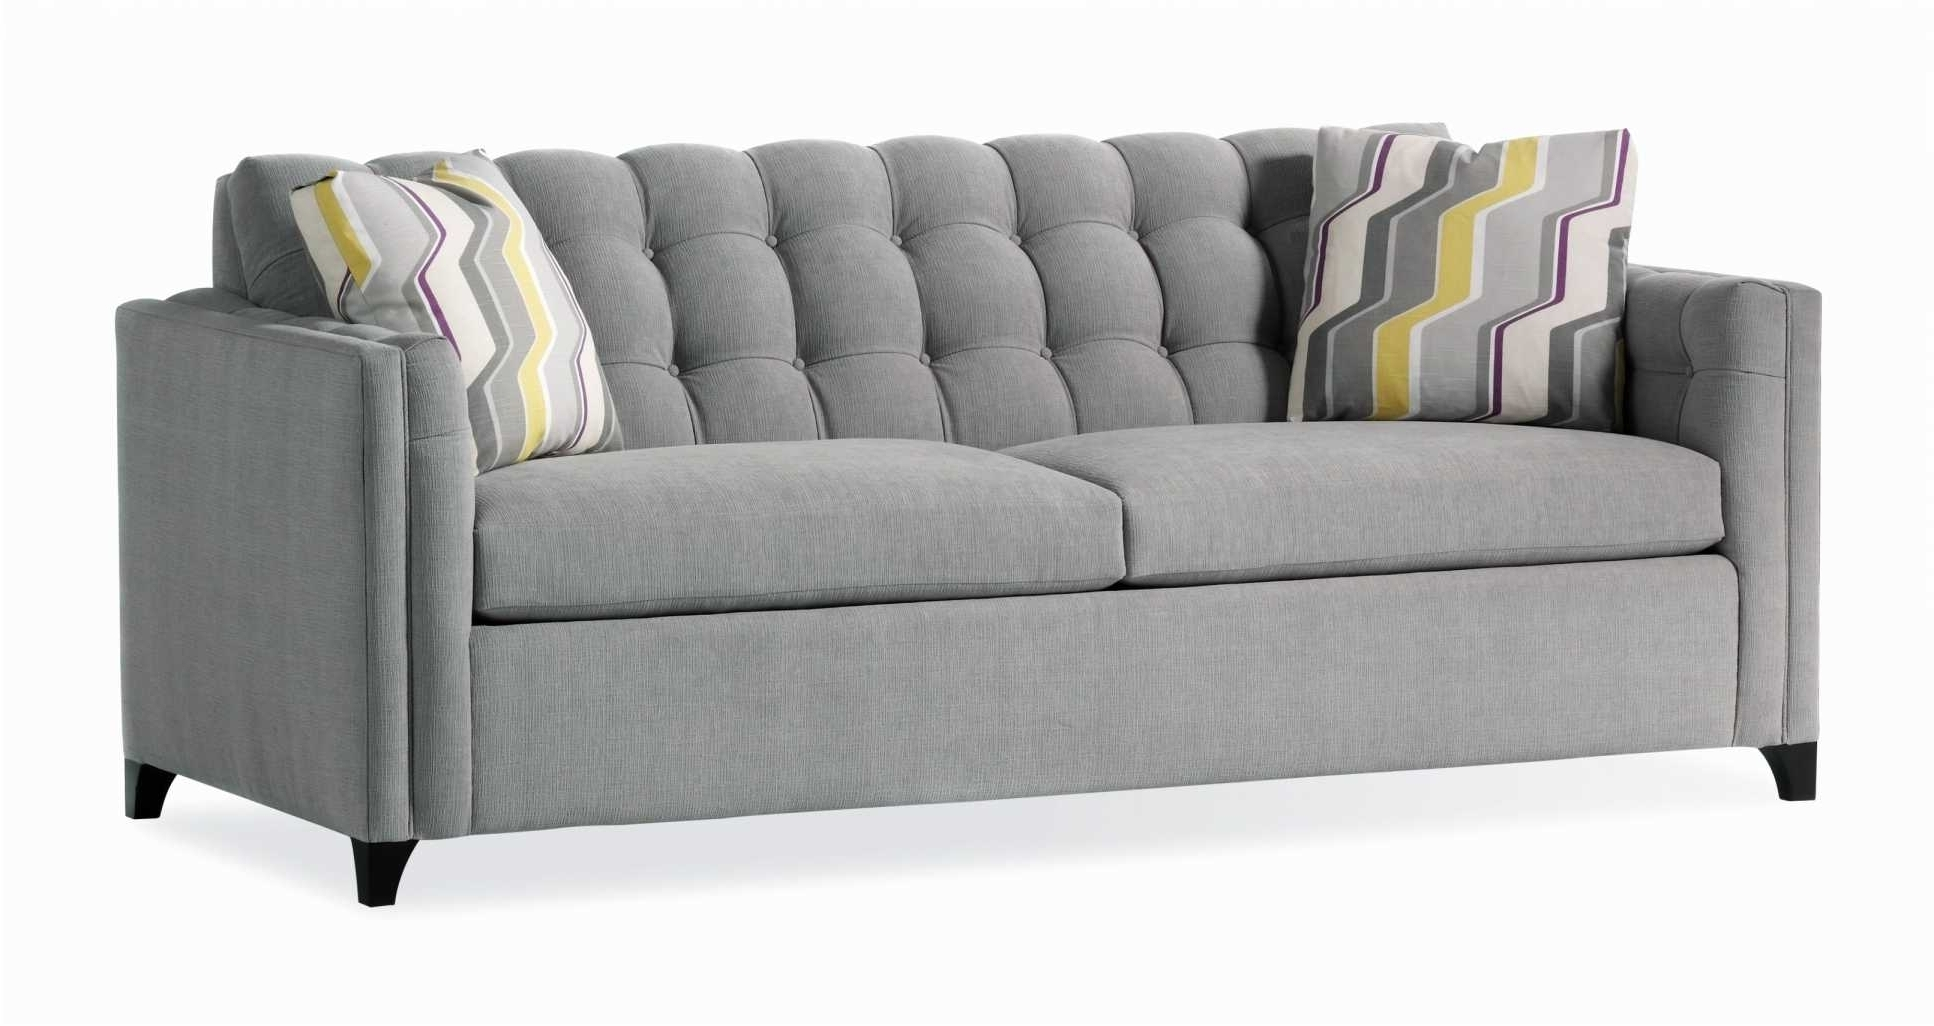 Small Loveseats With Chaise Inside Well Known Loveseat : Chaise Loveseat New Small Loveseat With Chaise Lounge (View 9 of 15)